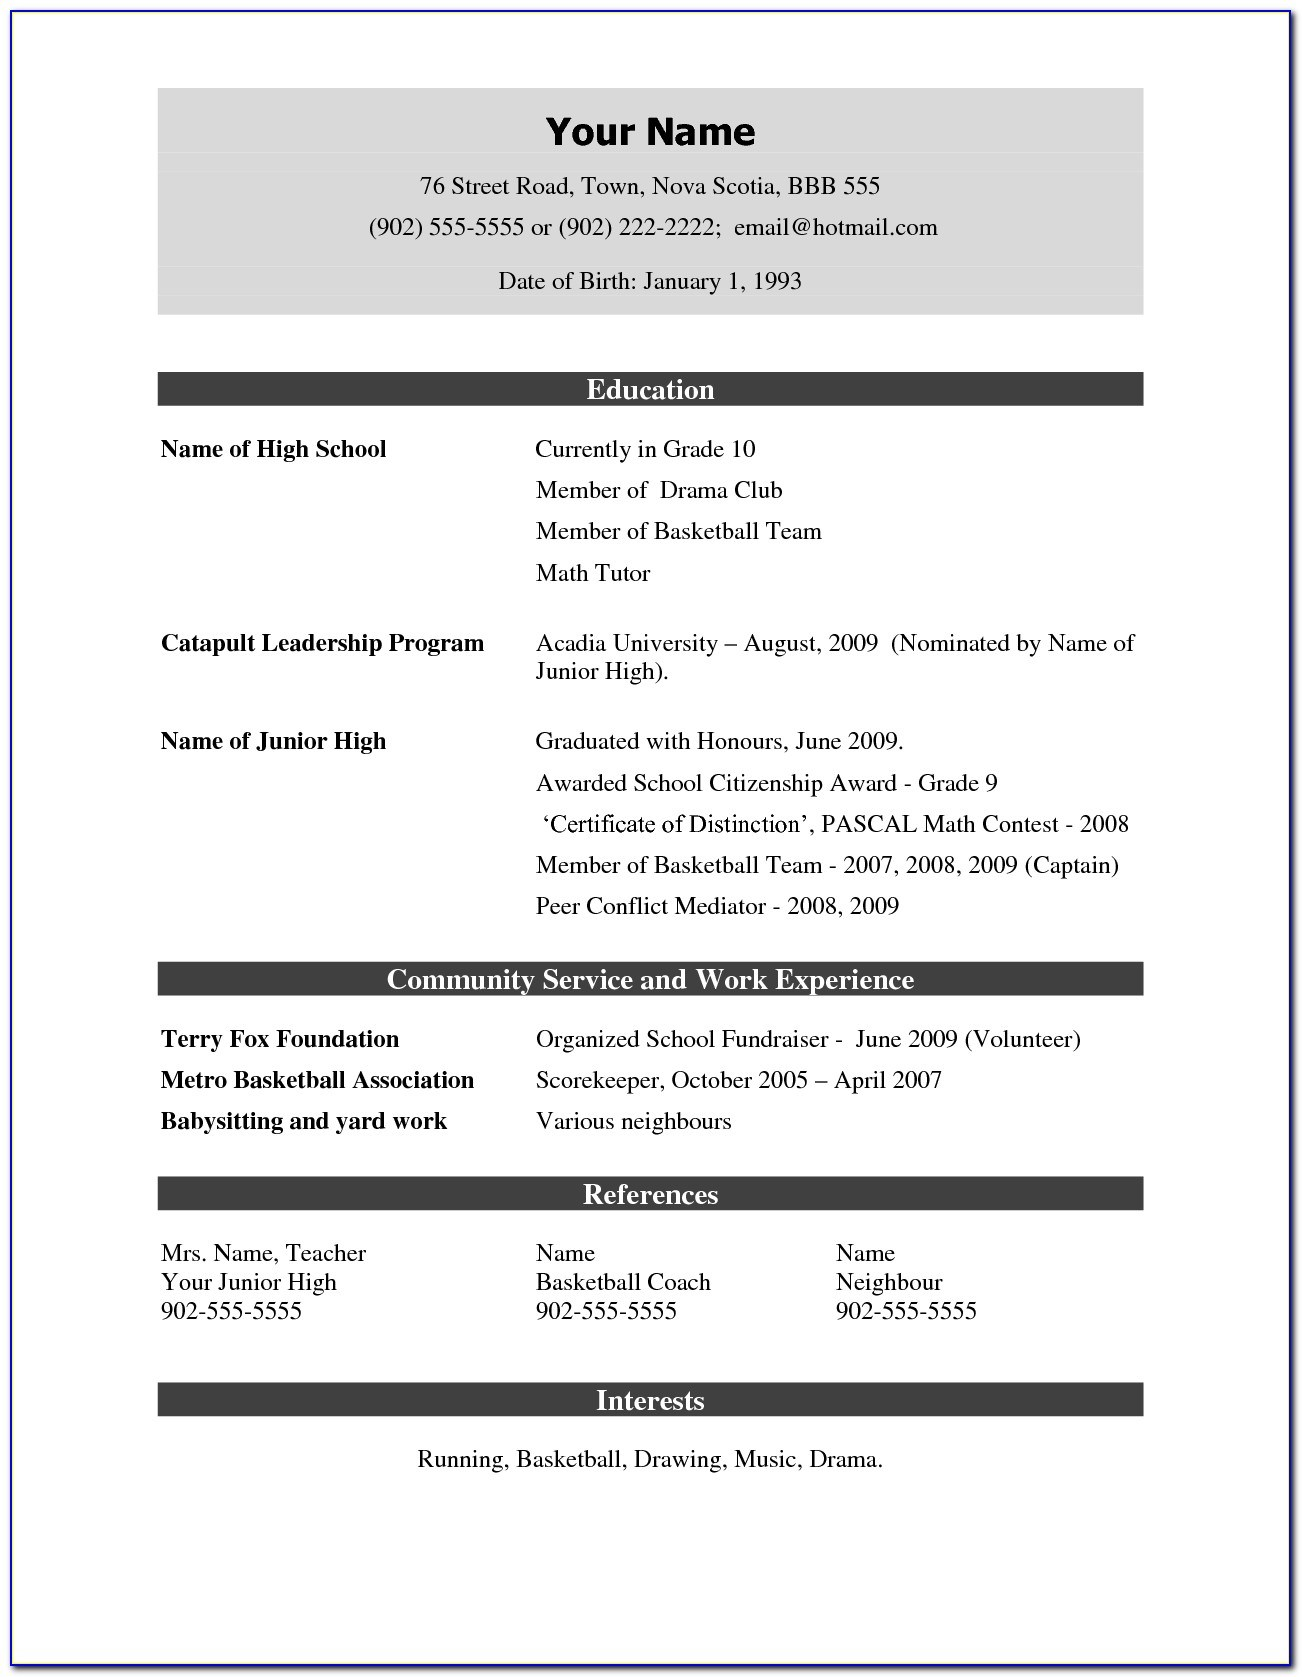 simple job resume format pdf vincegray2014 sharepoint business analyst current samples Resume Simple Resume Format Pdf